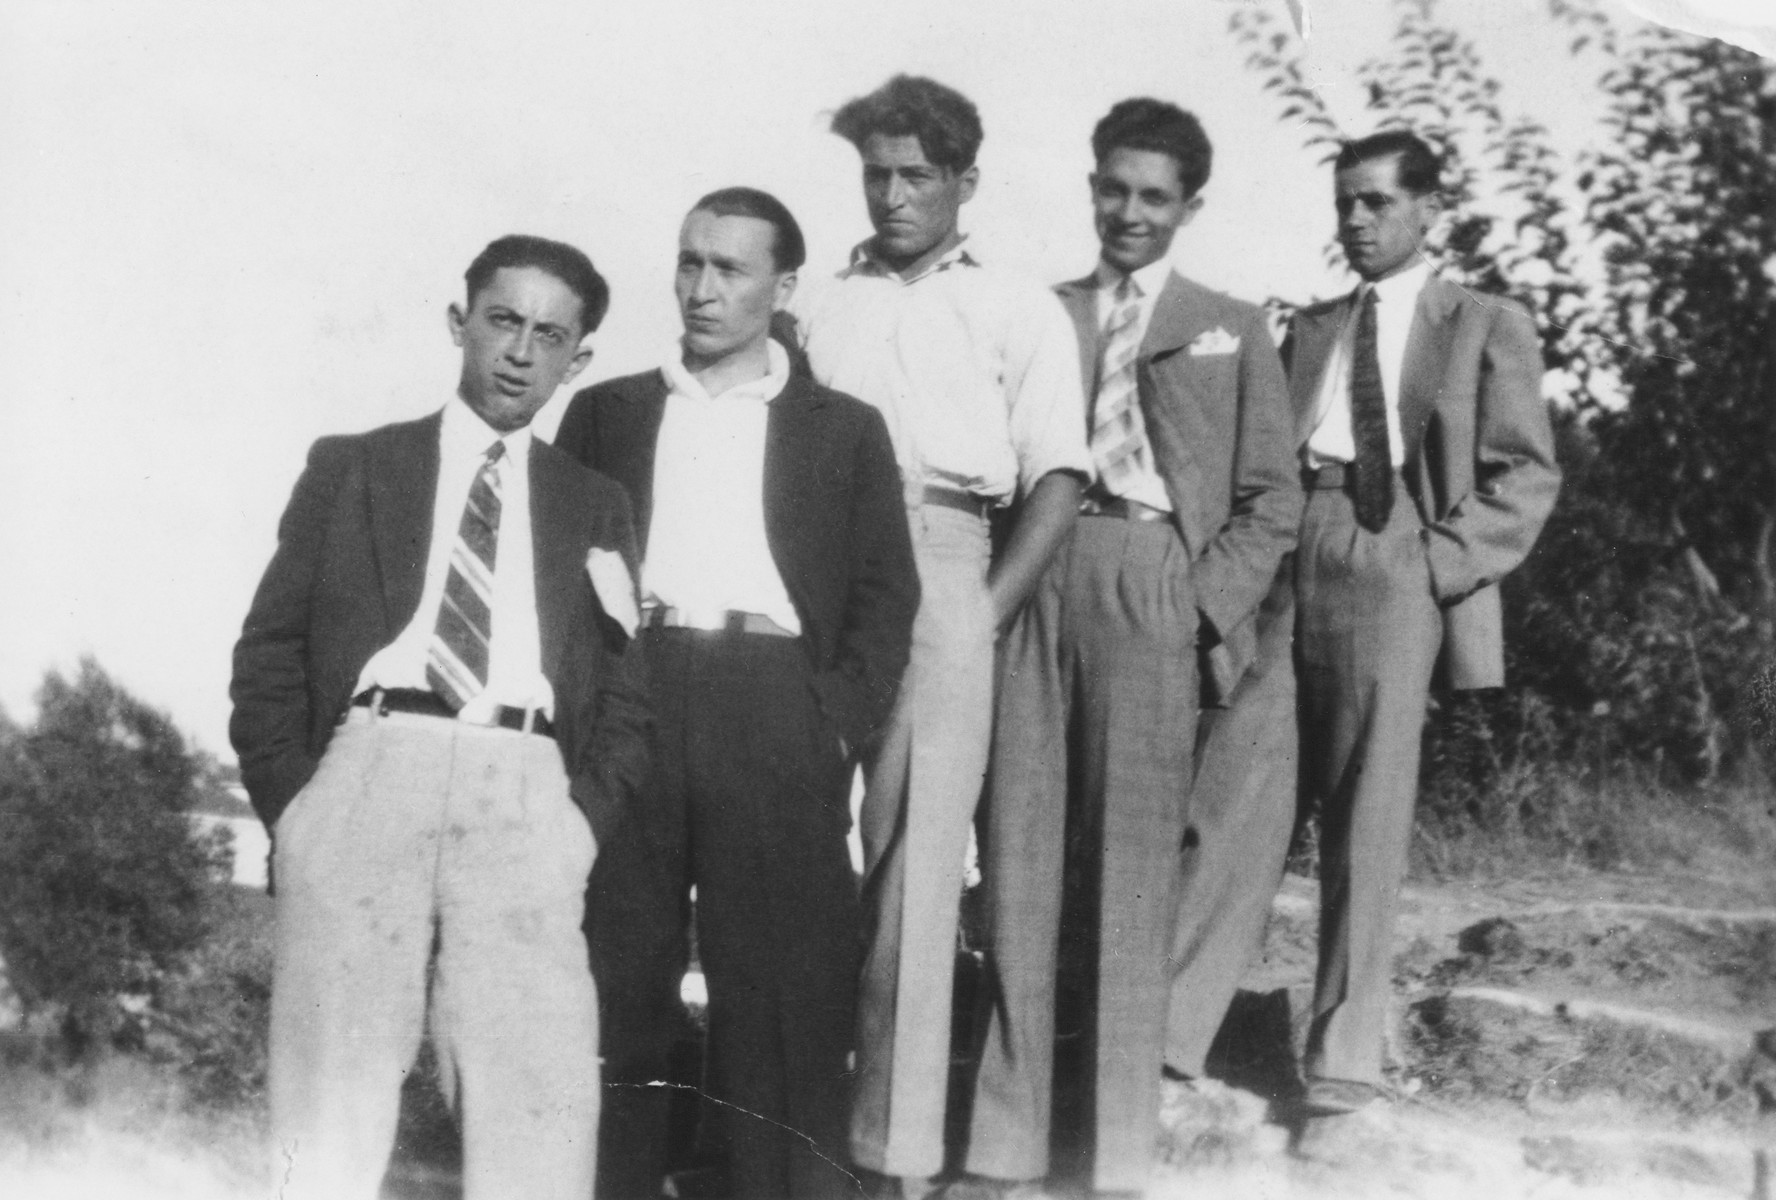 Five Jewish young men pose outdoors standing in a line.